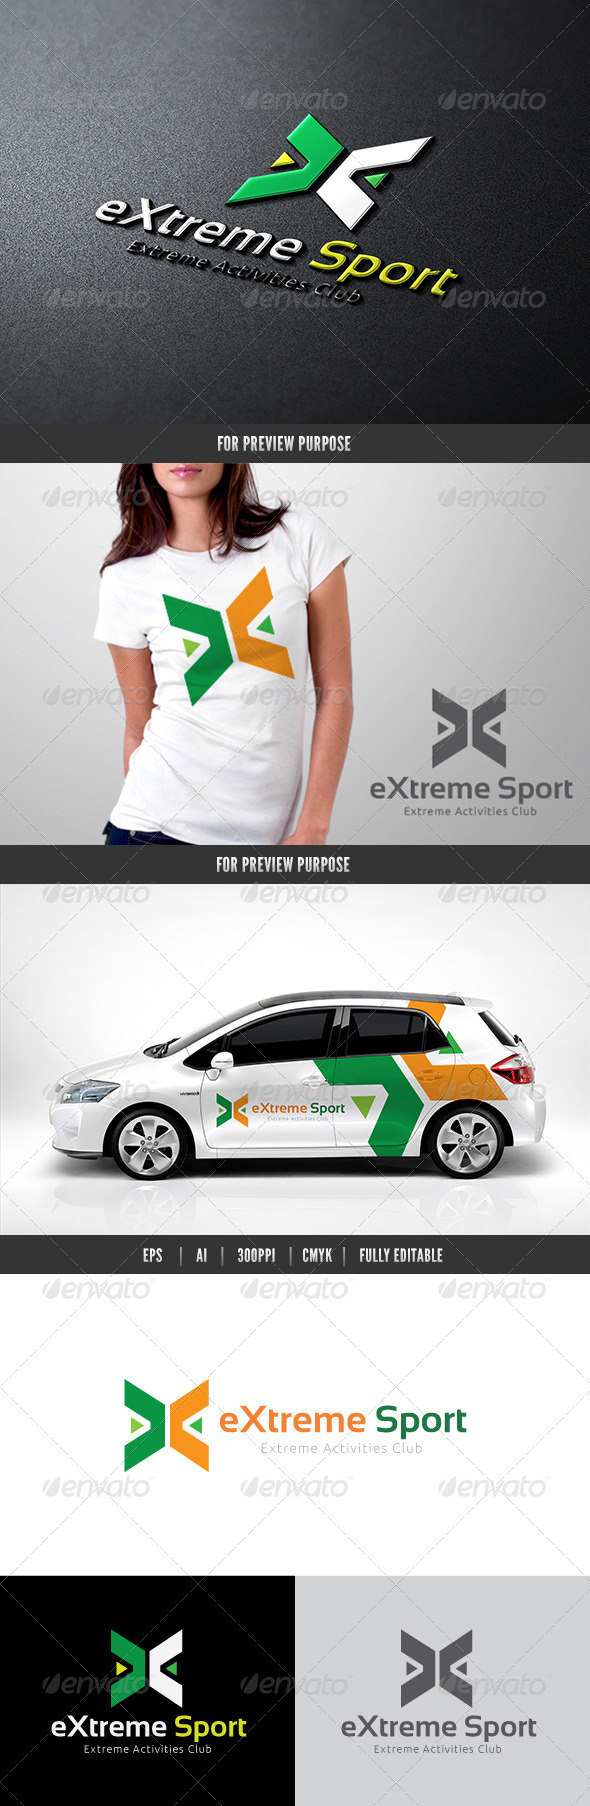 GraphicRiver Extreme Sport 6926092